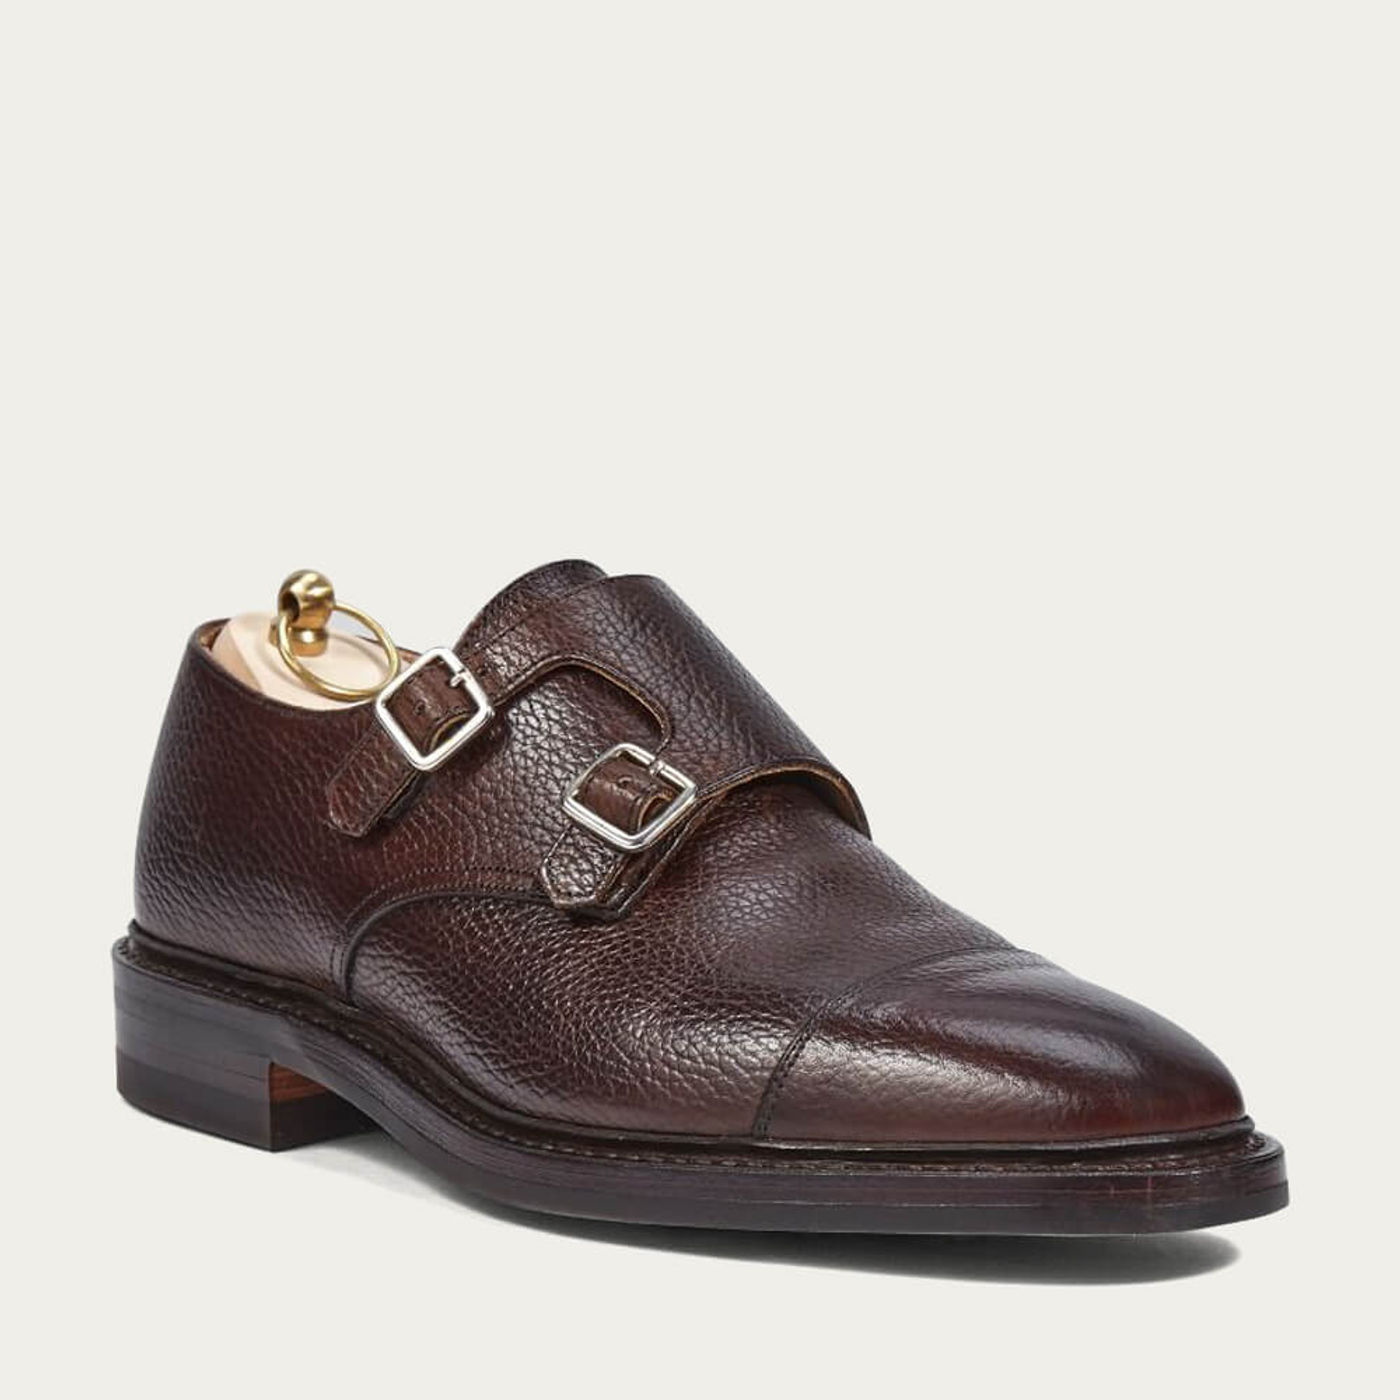 Dark Brown Grain Leather Double Monk Shoes With Dainite Sole   Bombinate